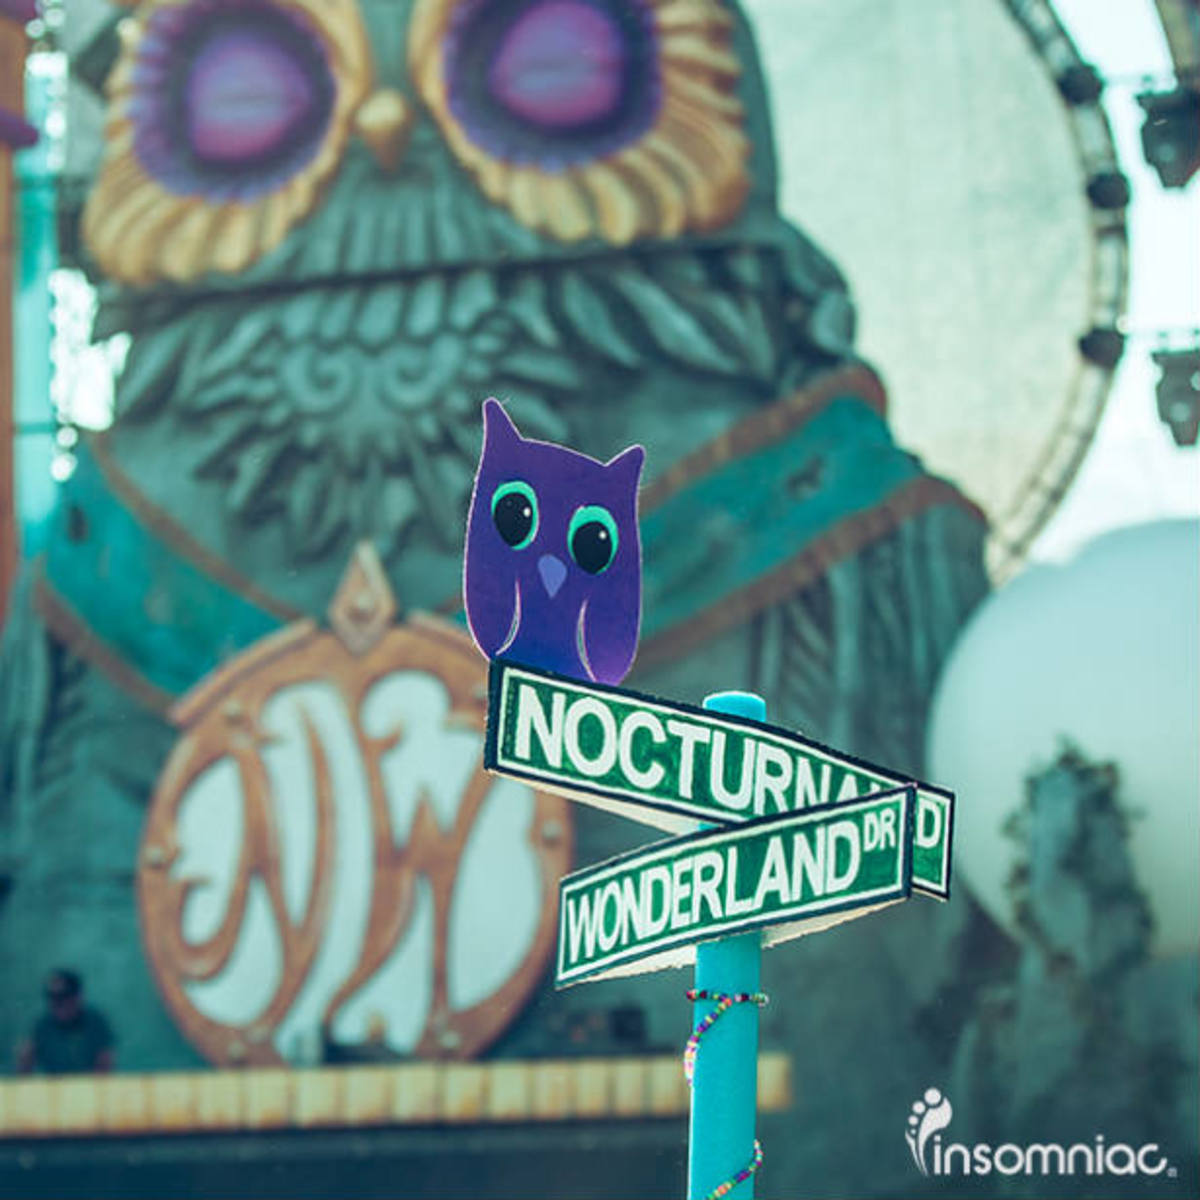 Nocturnal_Welcome